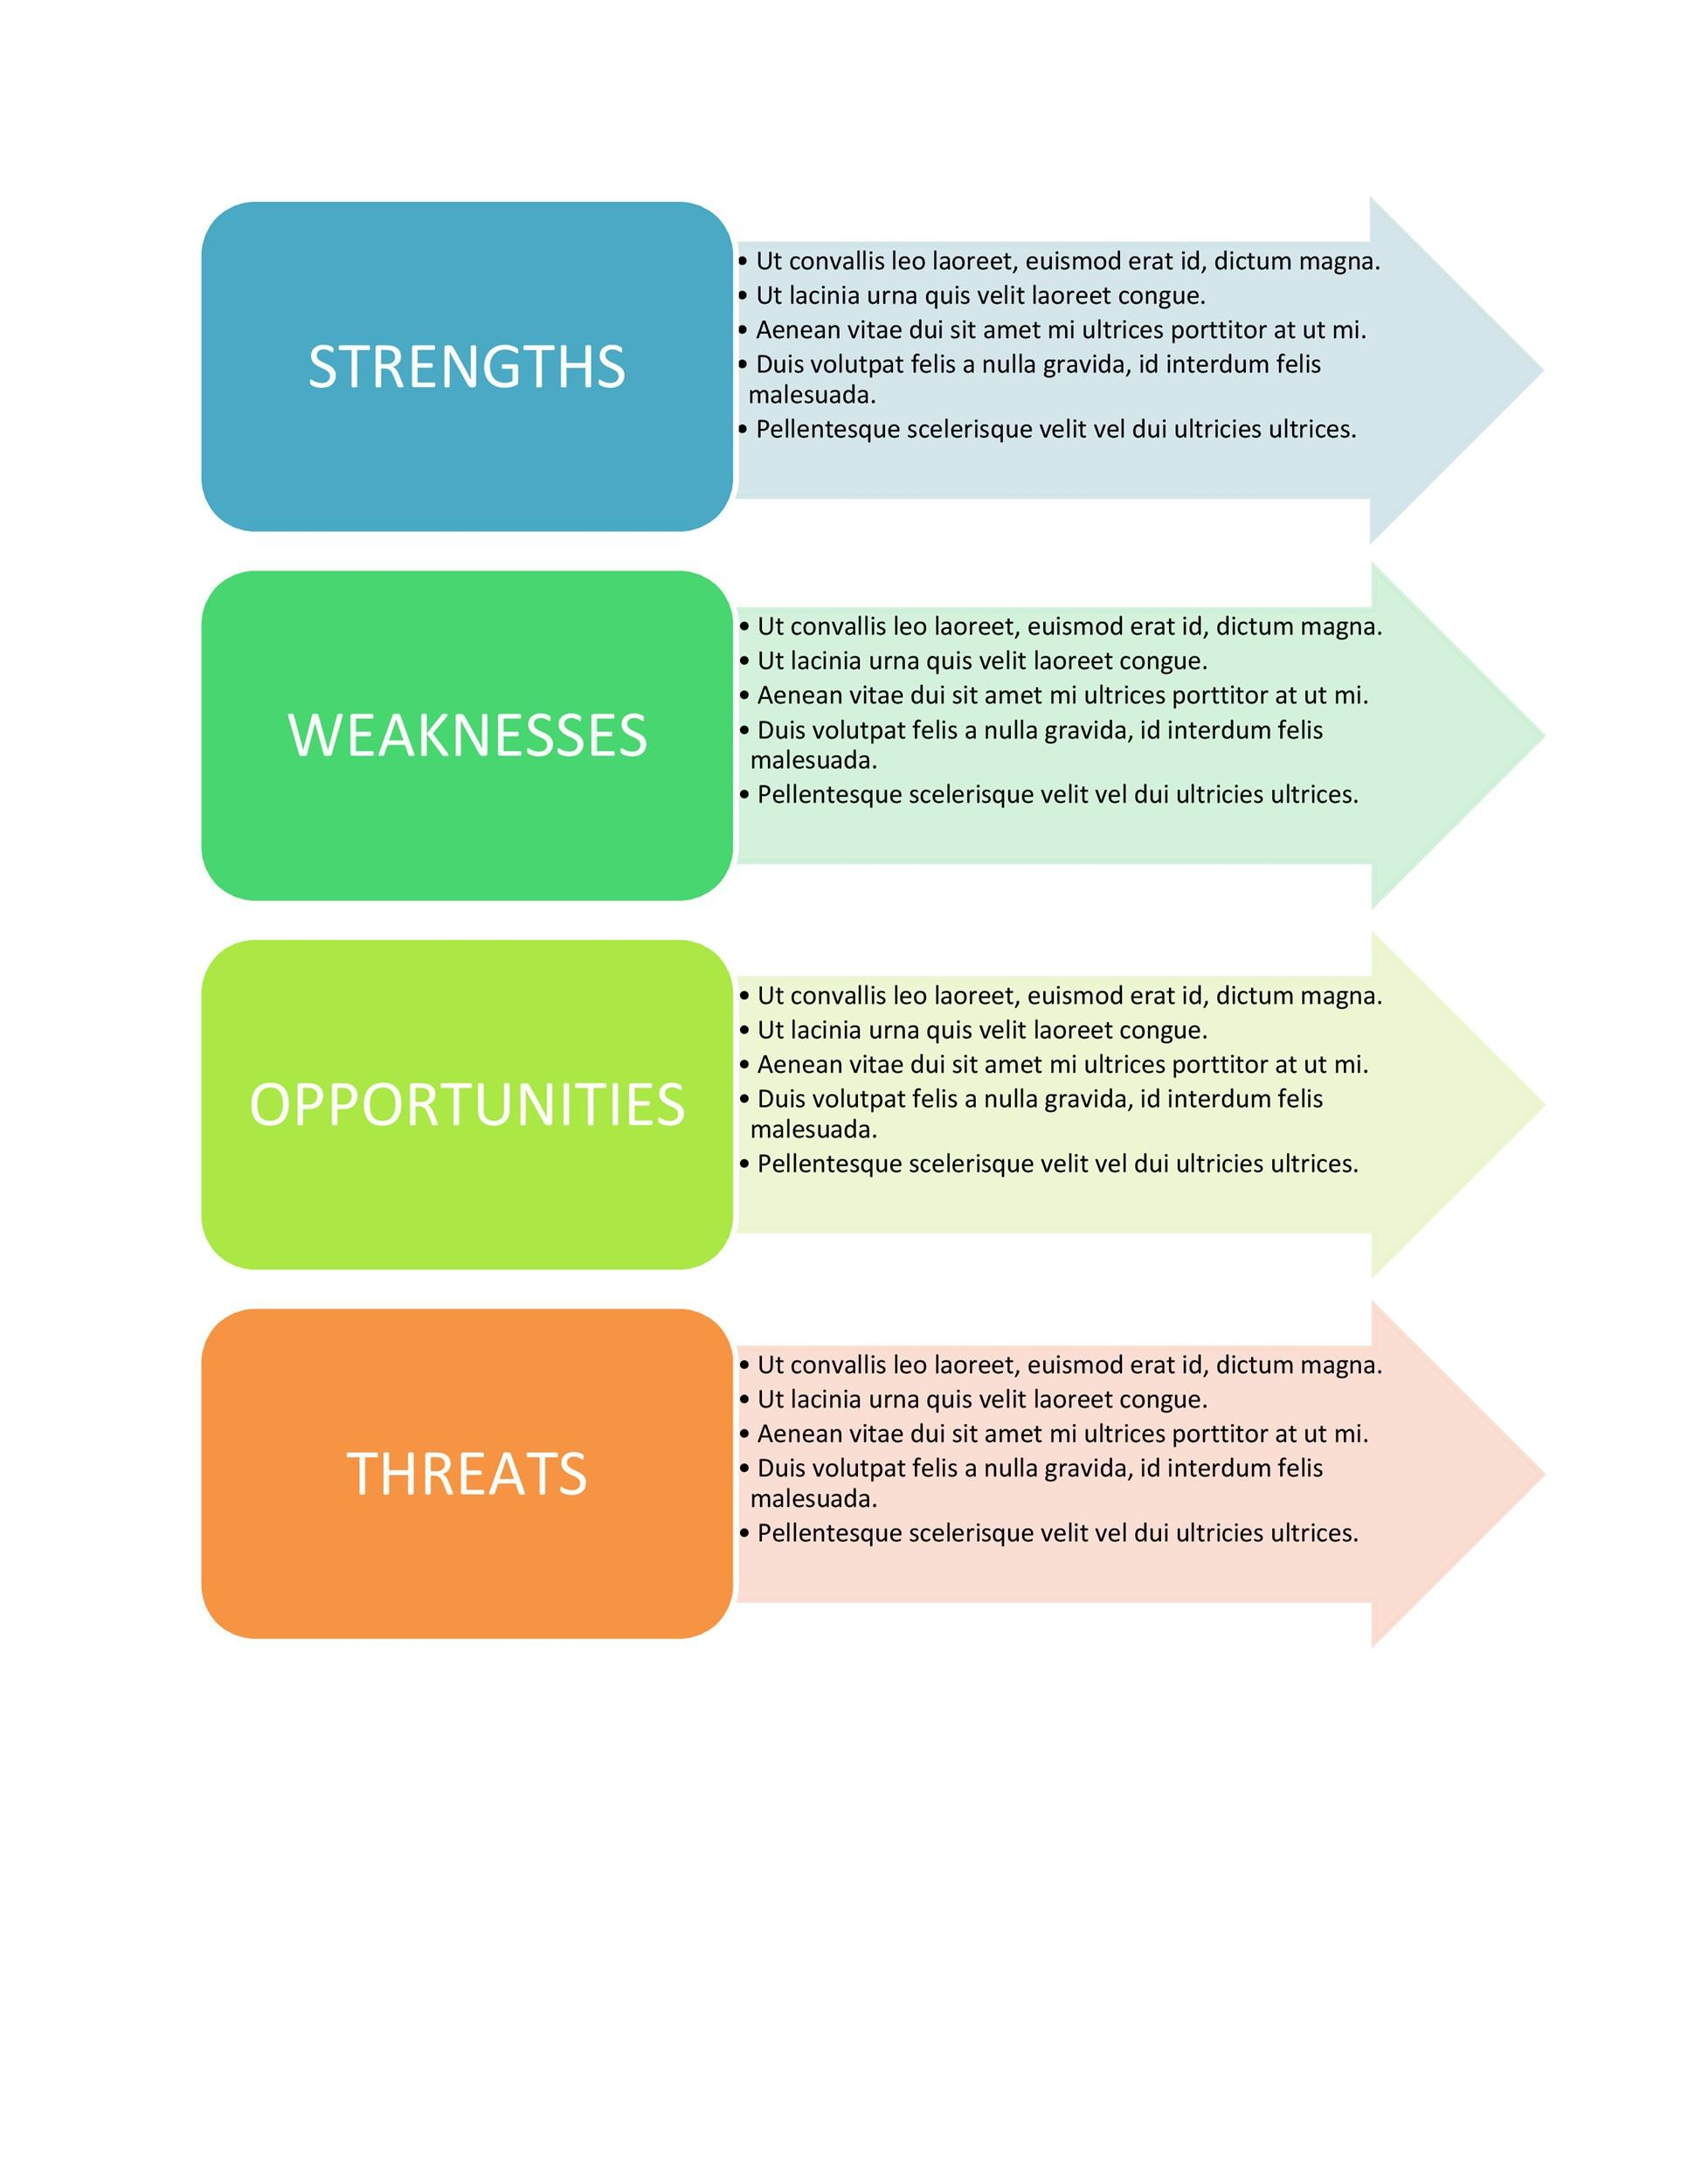 Free Swot Analysis Template 08